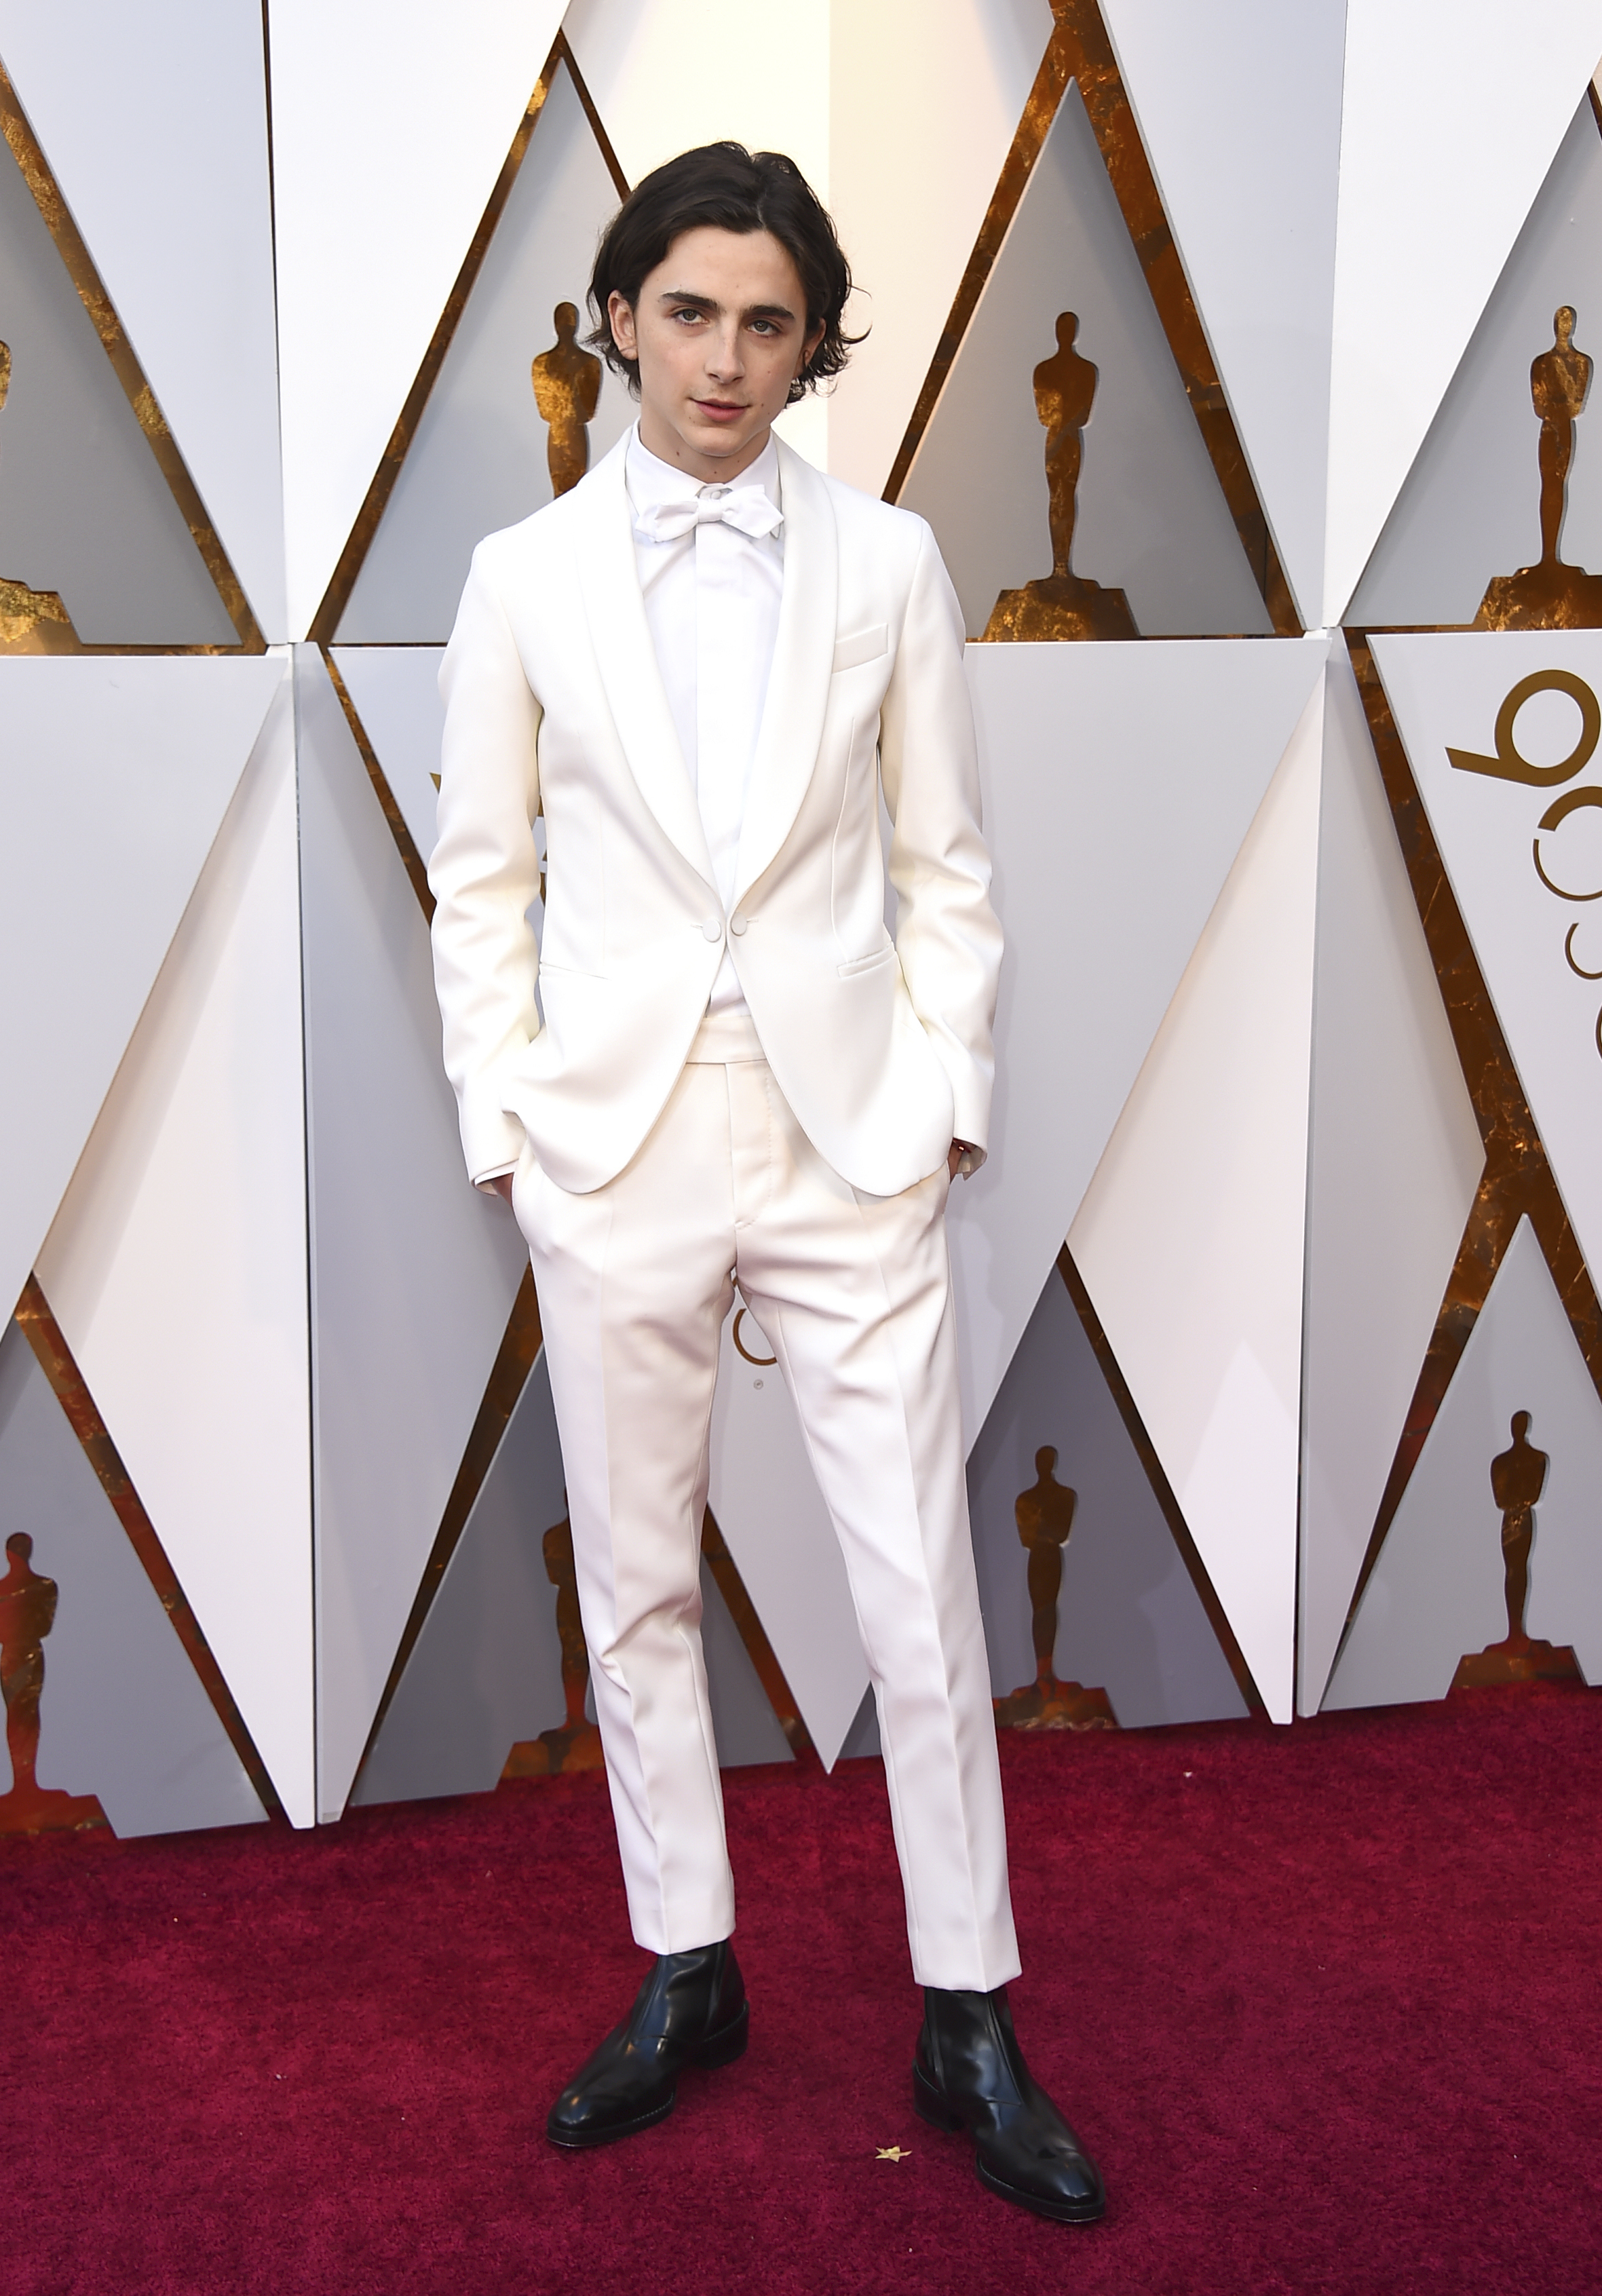 "<div class=""meta image-caption""><div class=""origin-logo origin-image none""><span>none</span></div><span class=""caption-text"">Best Actor nominee Timothee Chalamet of ''Call Me By Your Name'' arrives at the Oscars on Sunday, March 4, 2018, at the Dolby Theatre in Los Angeles. (Jordan Strauss/Invision/AP)</span></div>"